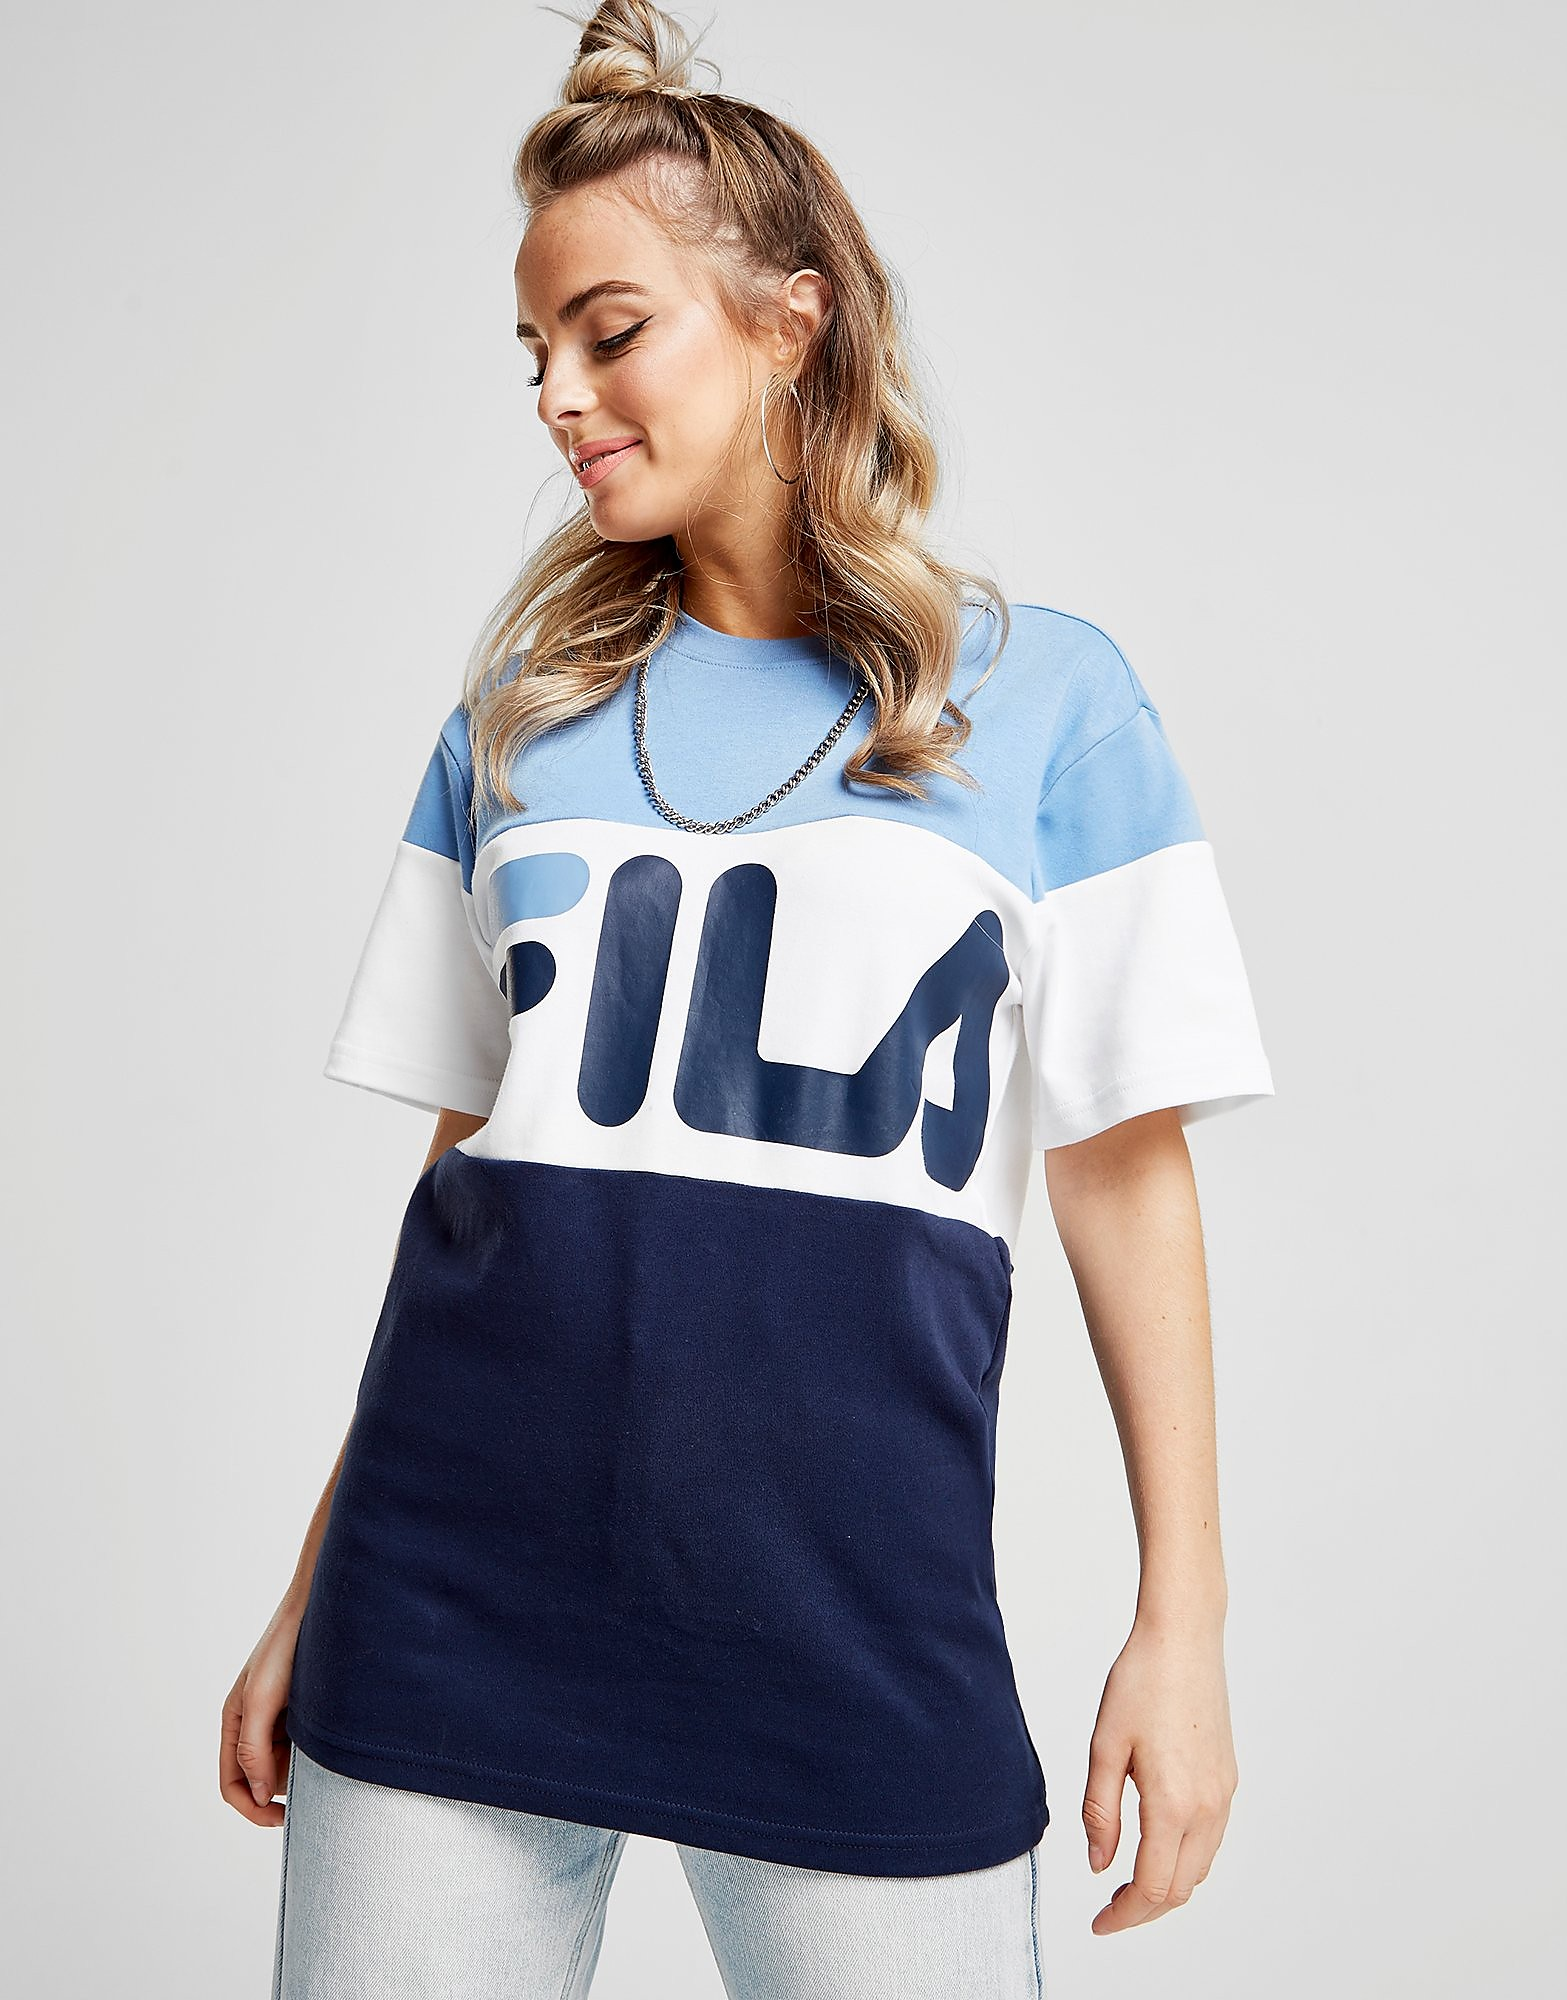 Fila ColourblockT-Shirt